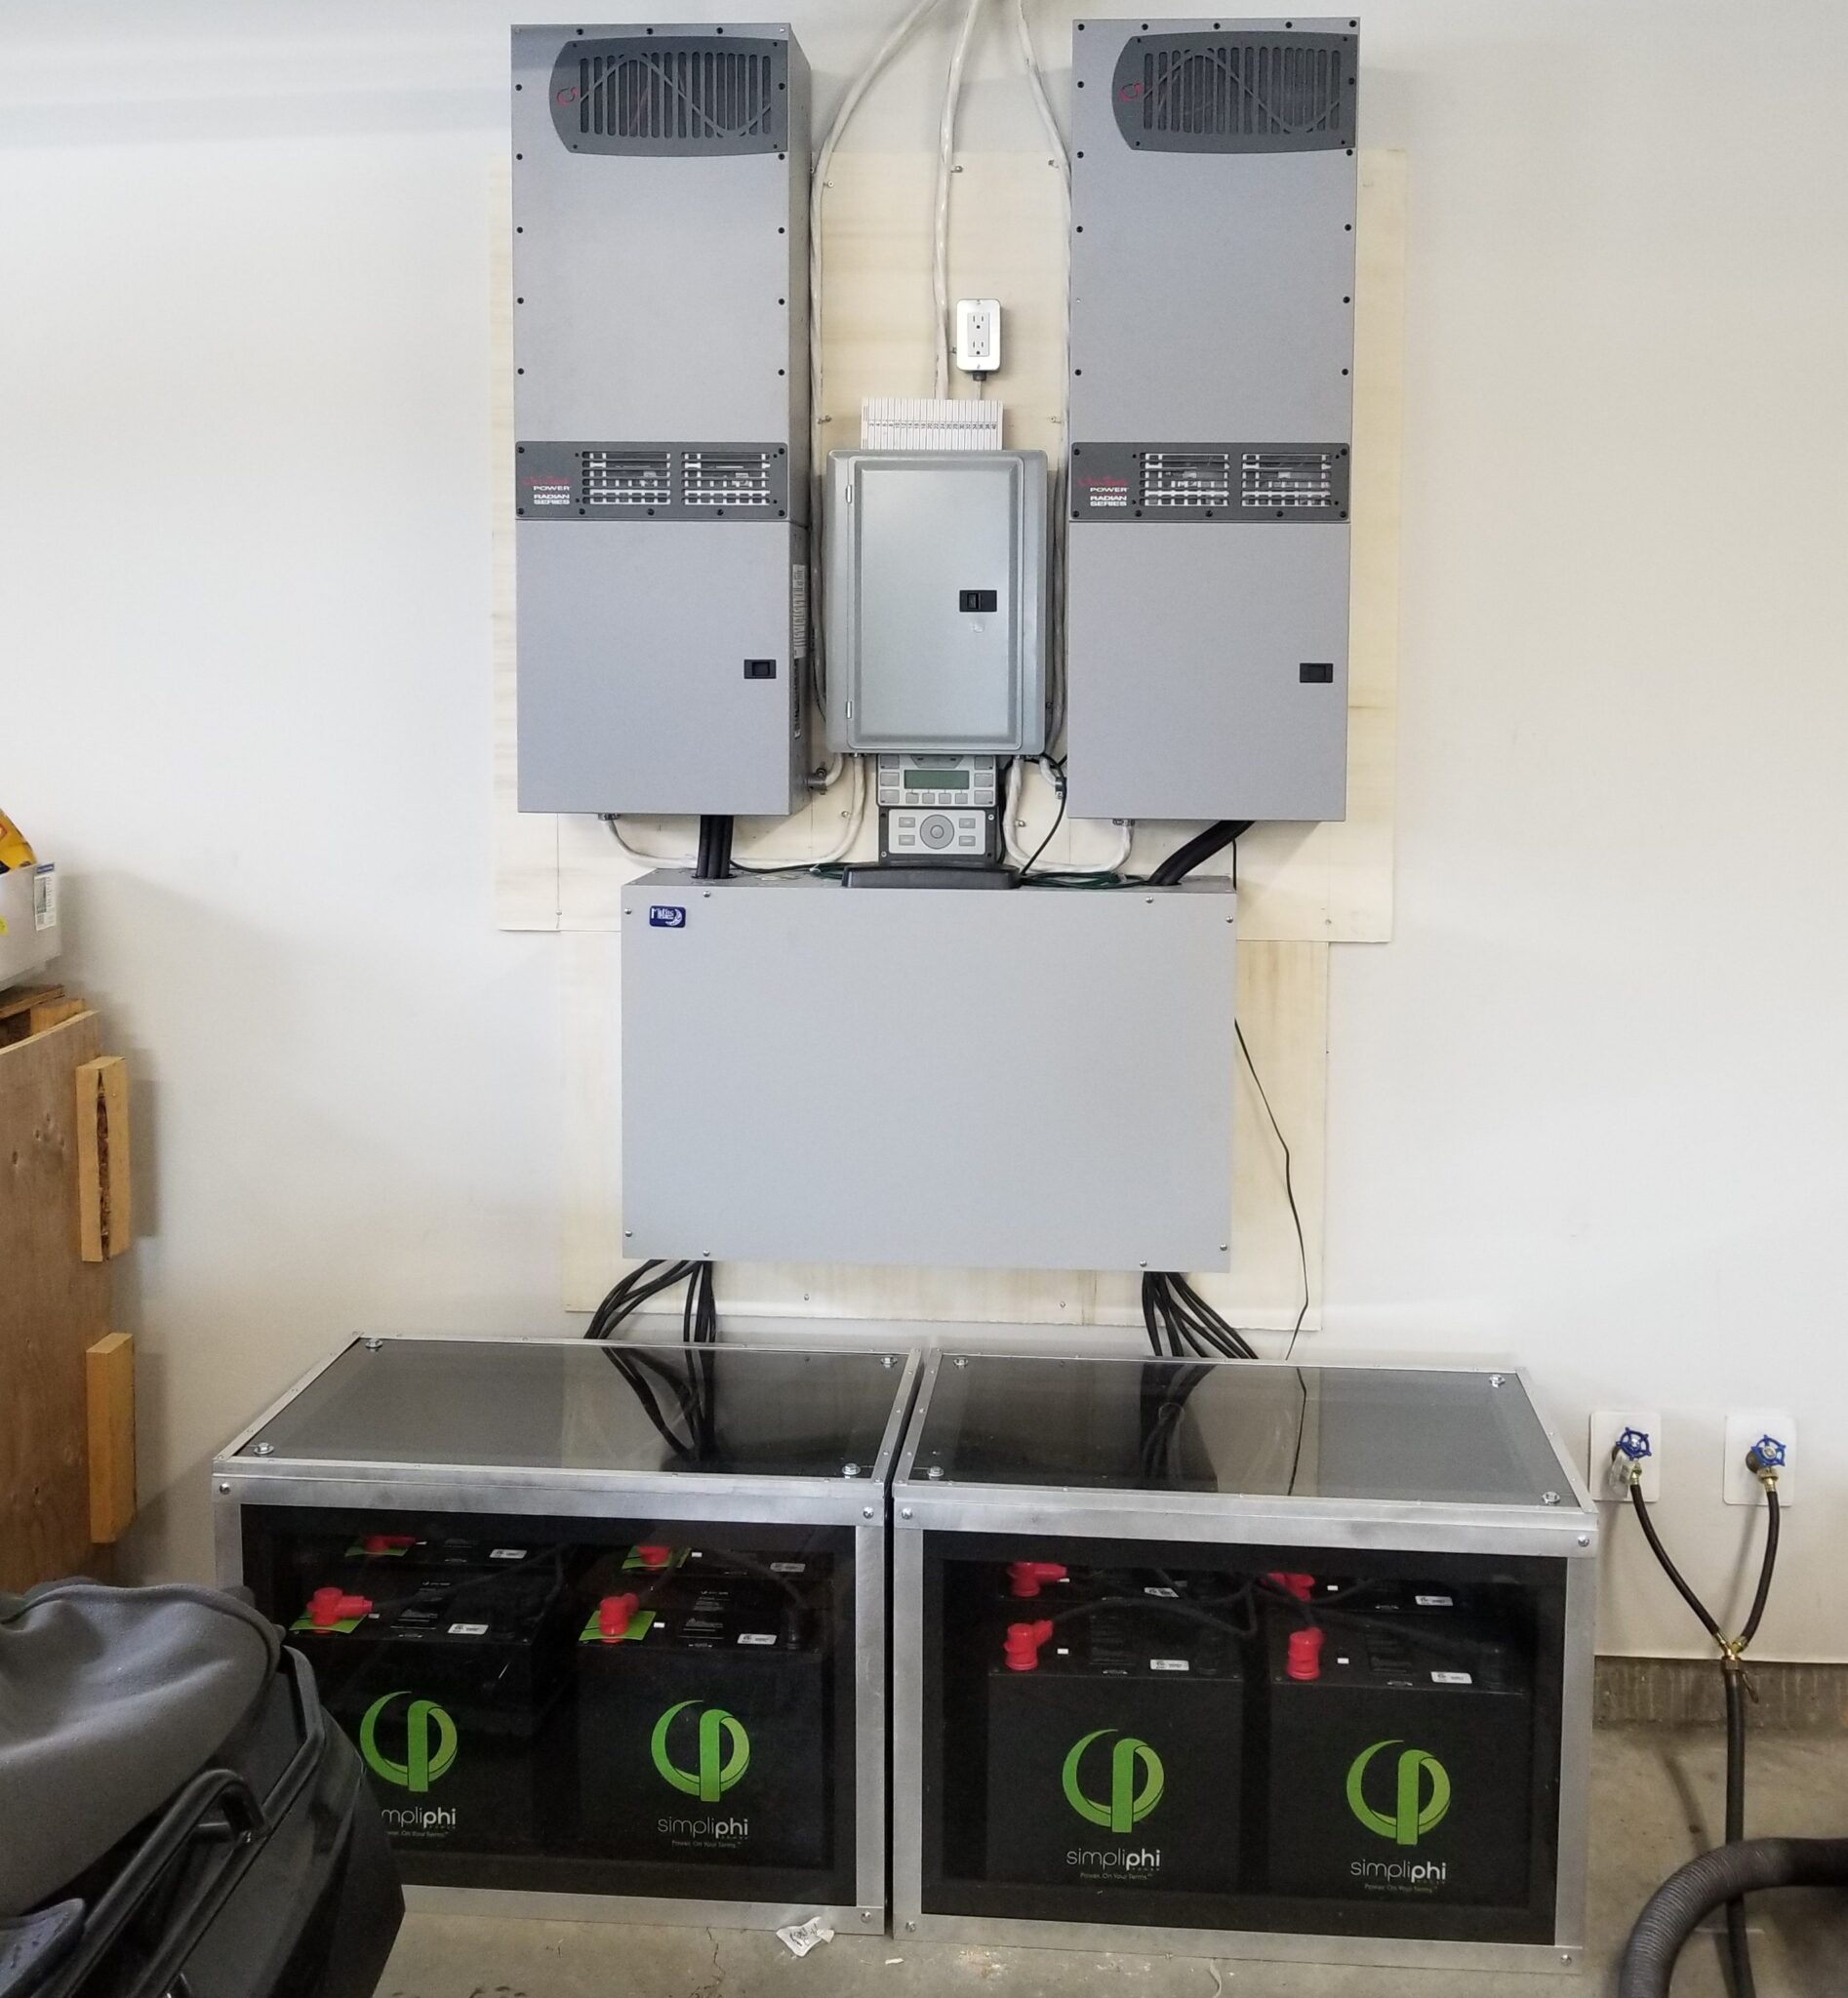 28kWh Backup system, Bearspaw